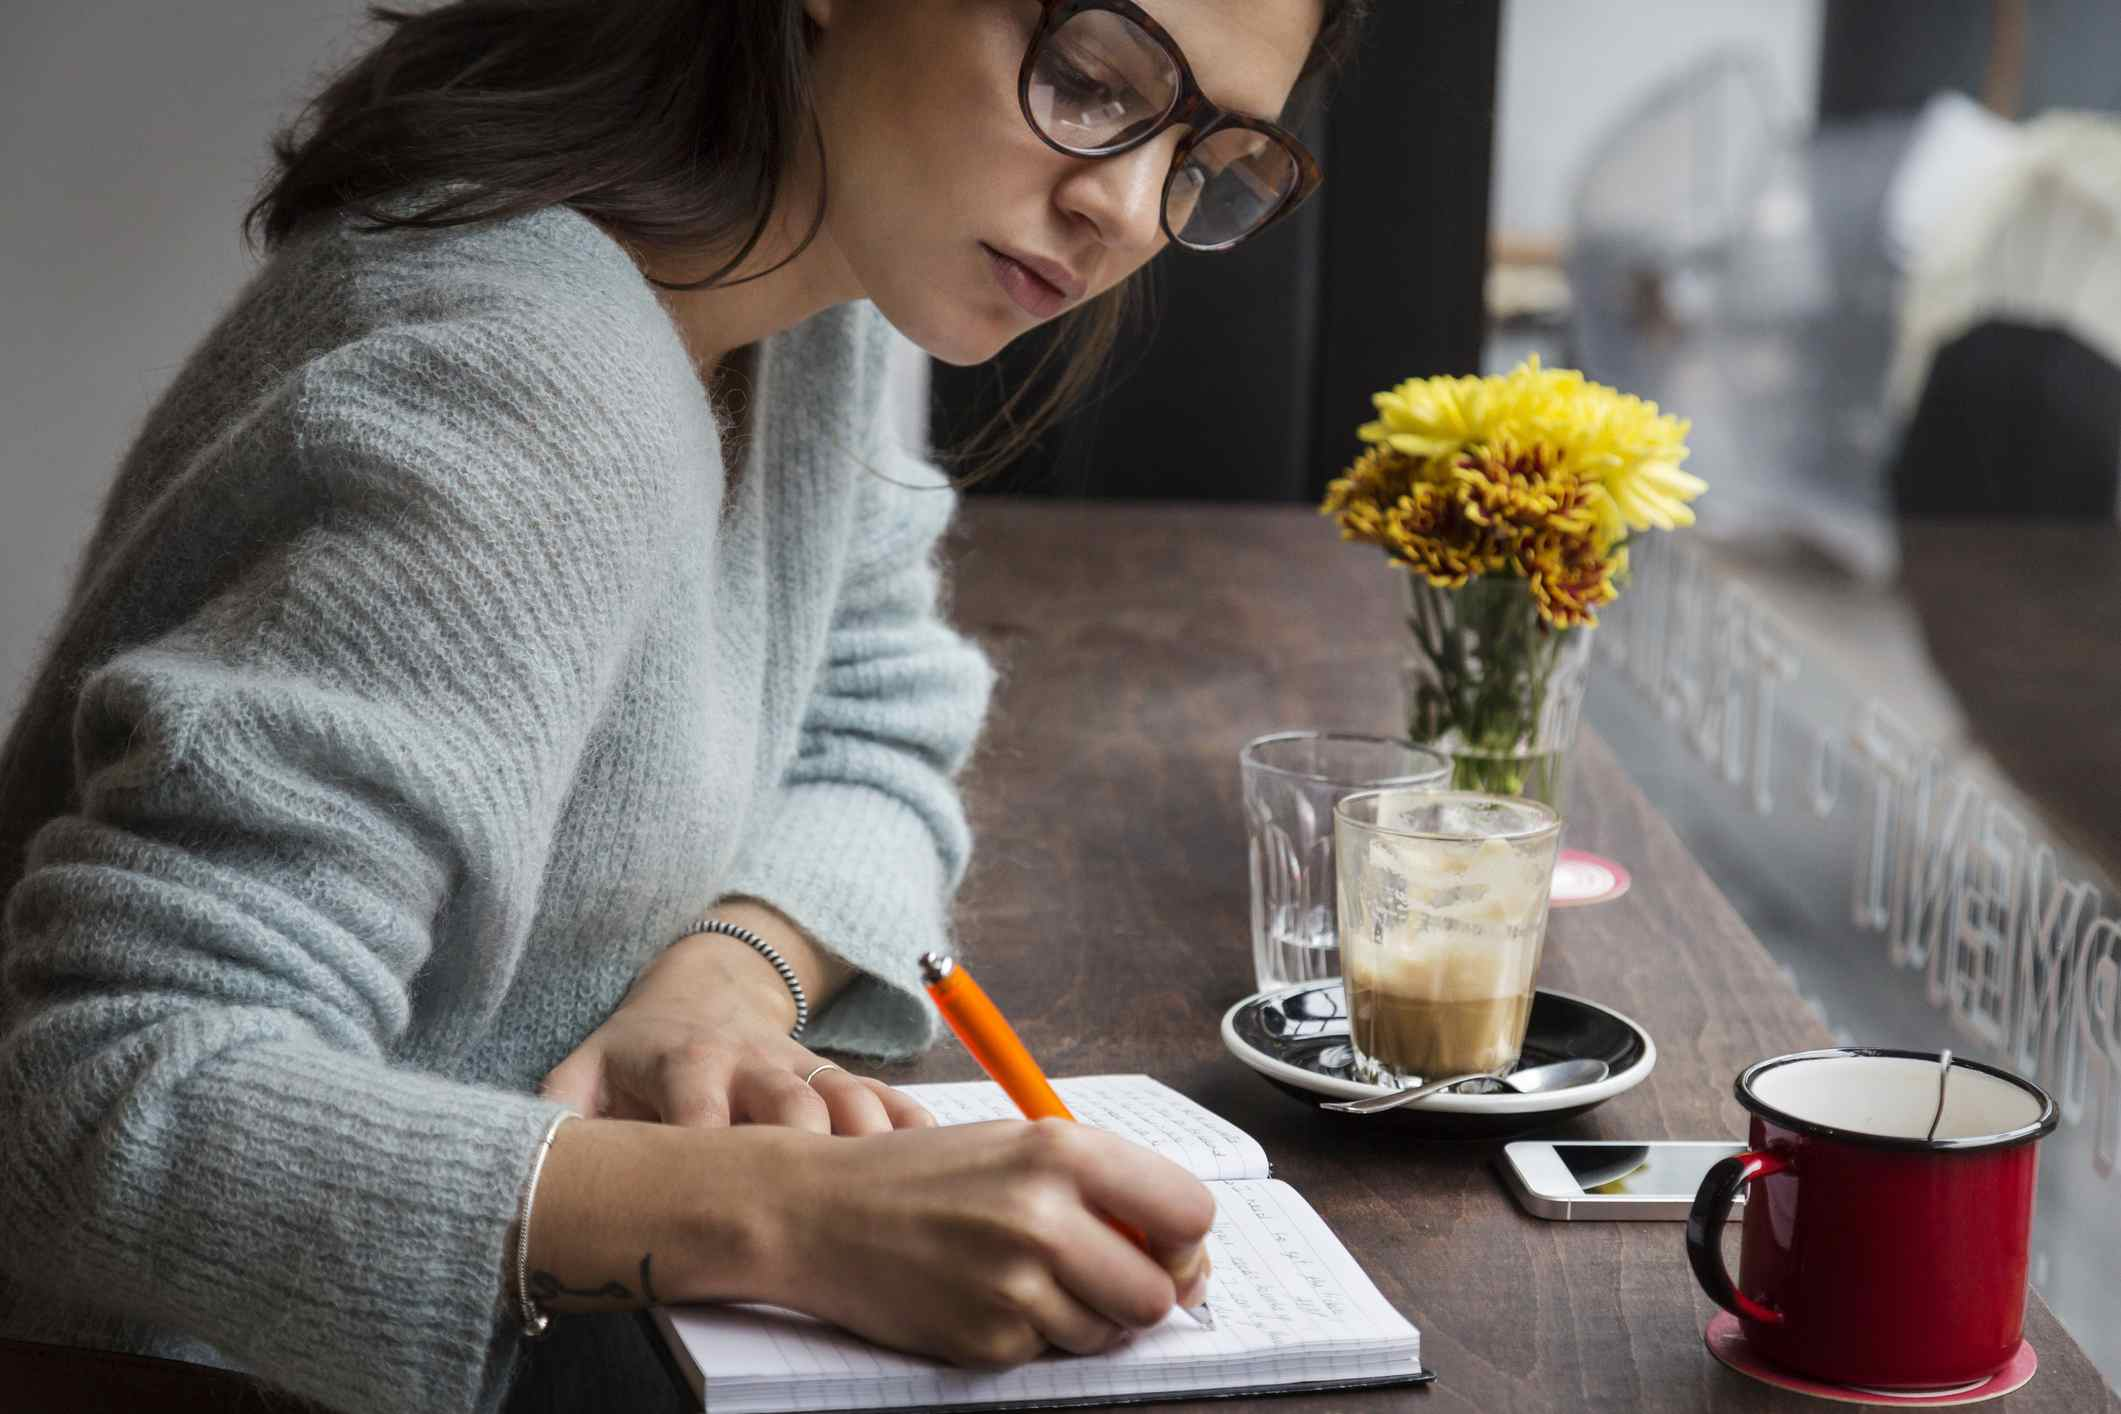 Woman doing writing exercises in a journal